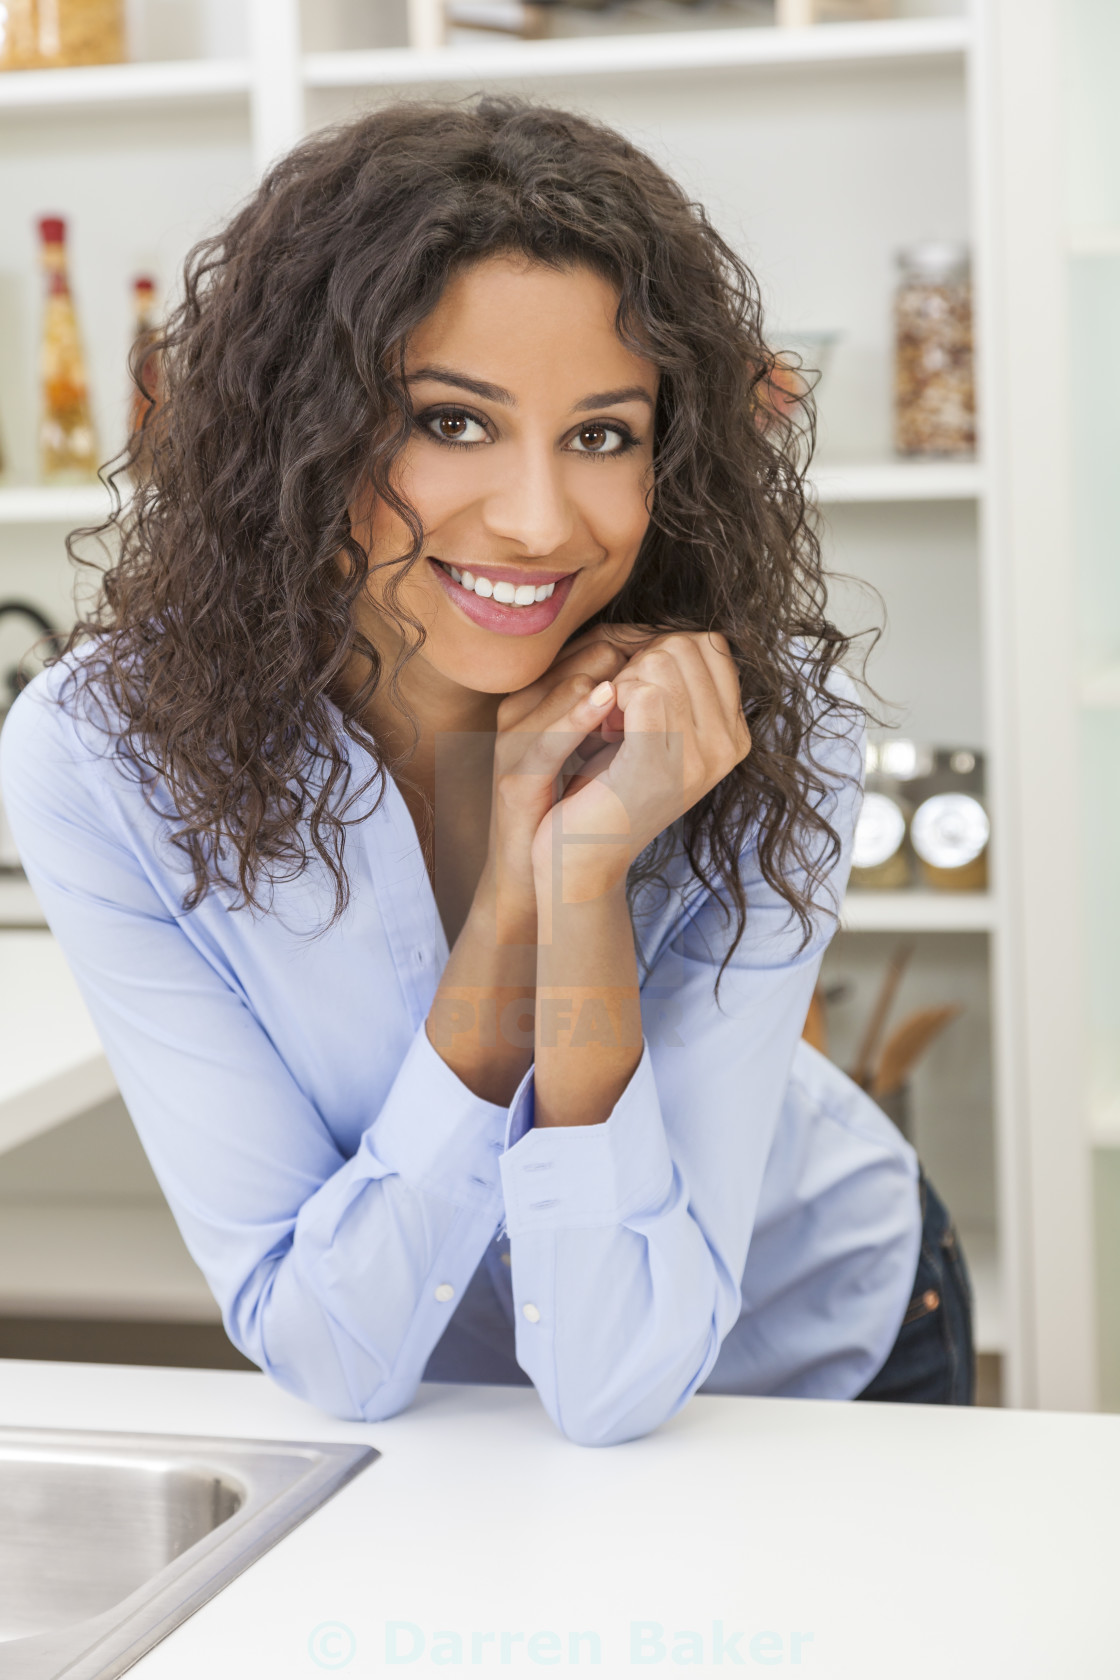 """""""Young Woman Perfect Teeth and Smile in Kitchen"""" stock image"""